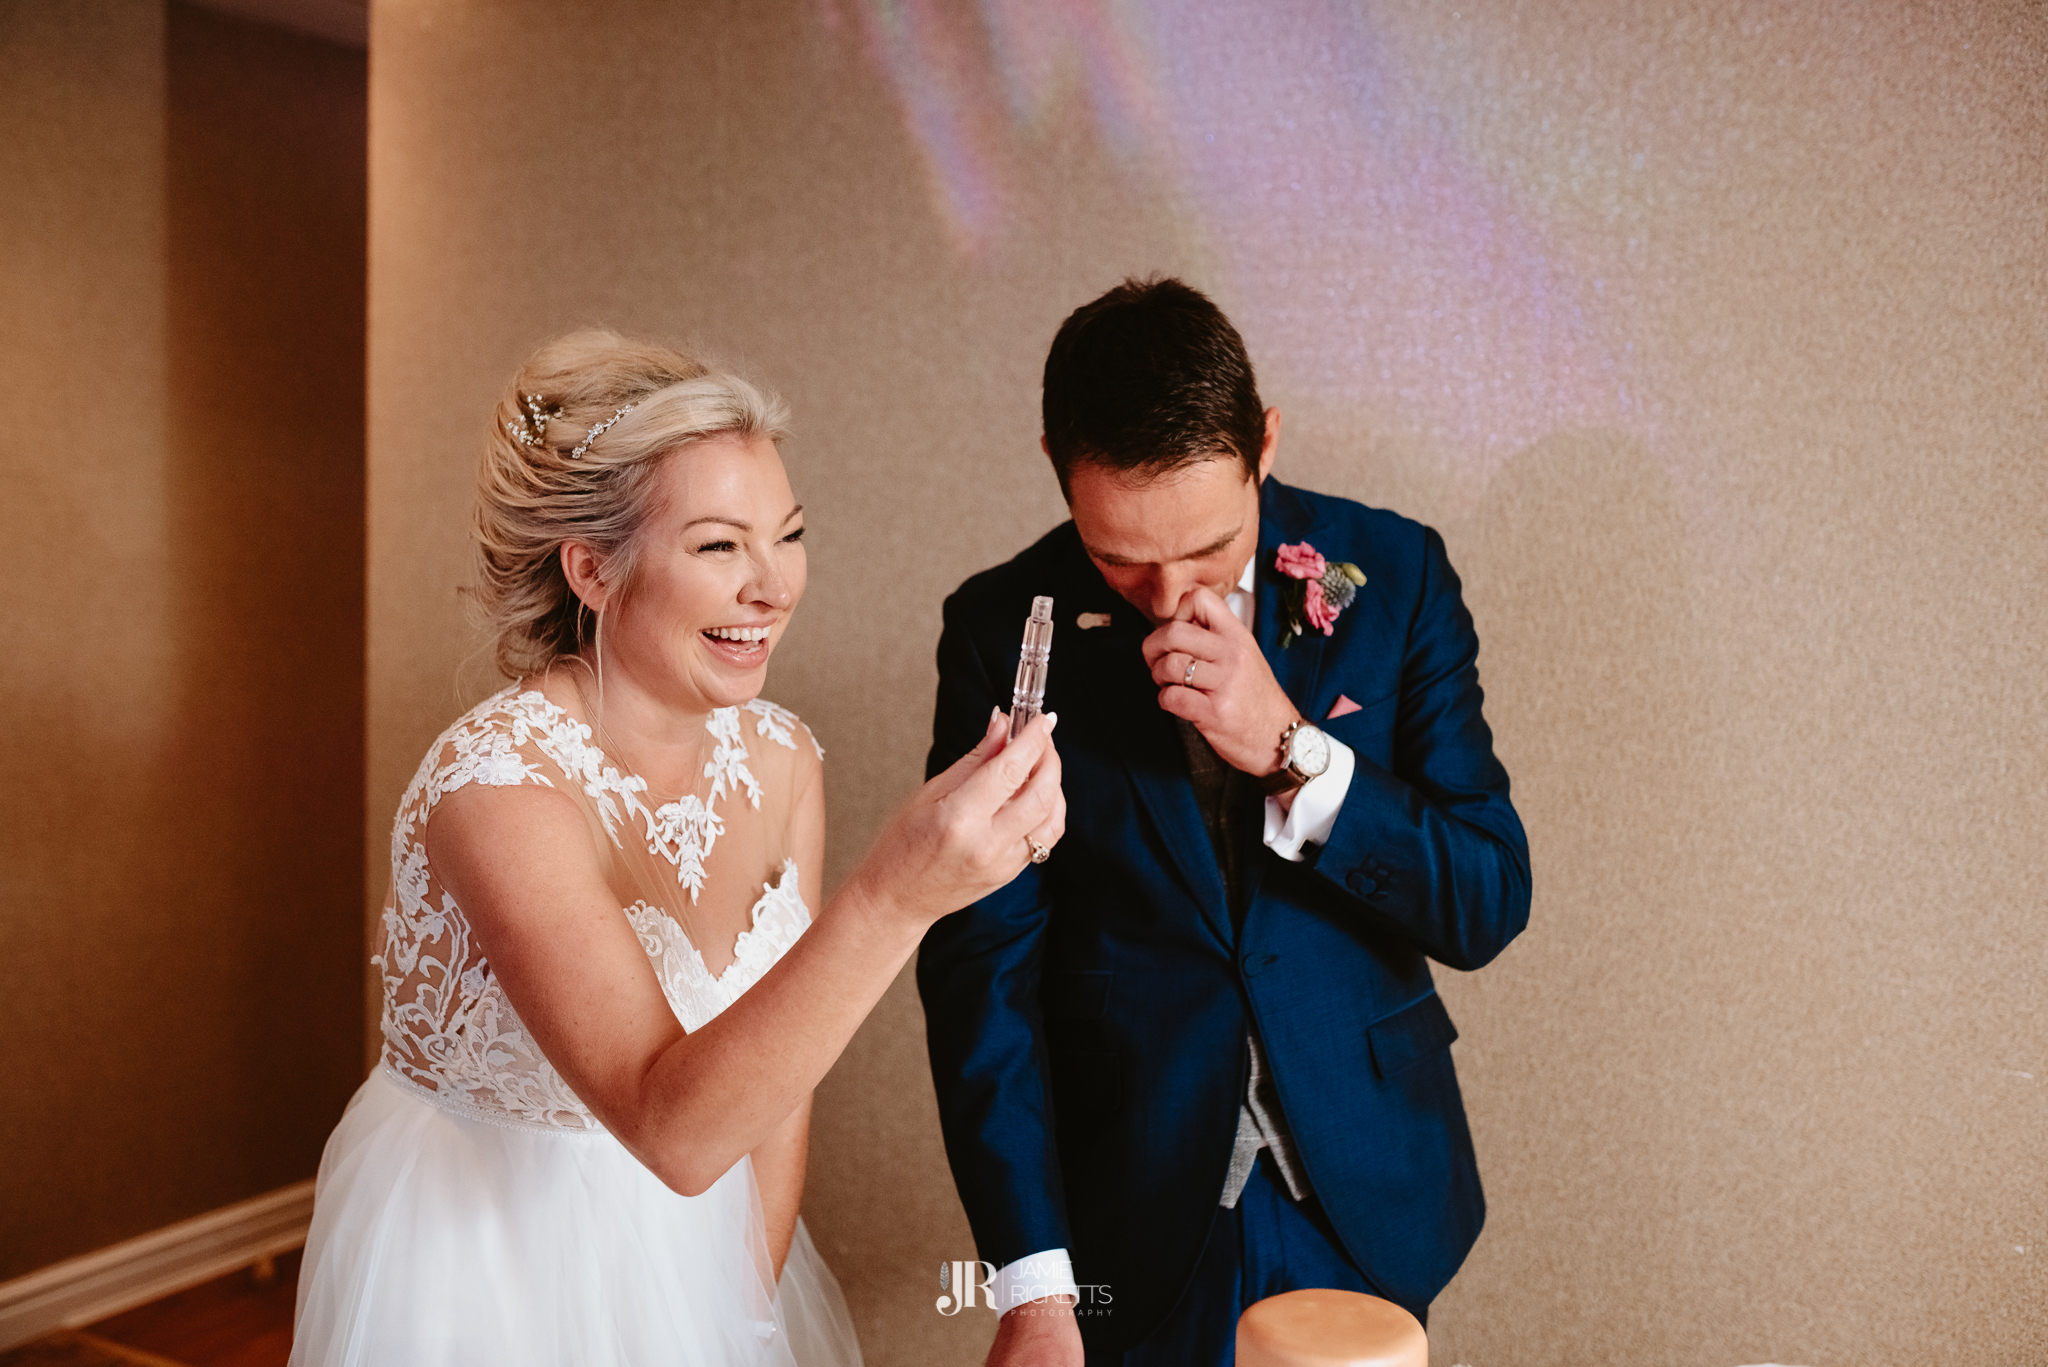 Wroxeter-Hotel-Wedding-Photography-In-Shropshire-By-Shropshire-Wedding-Photographer-Jamie-Ricketts-211.JPG